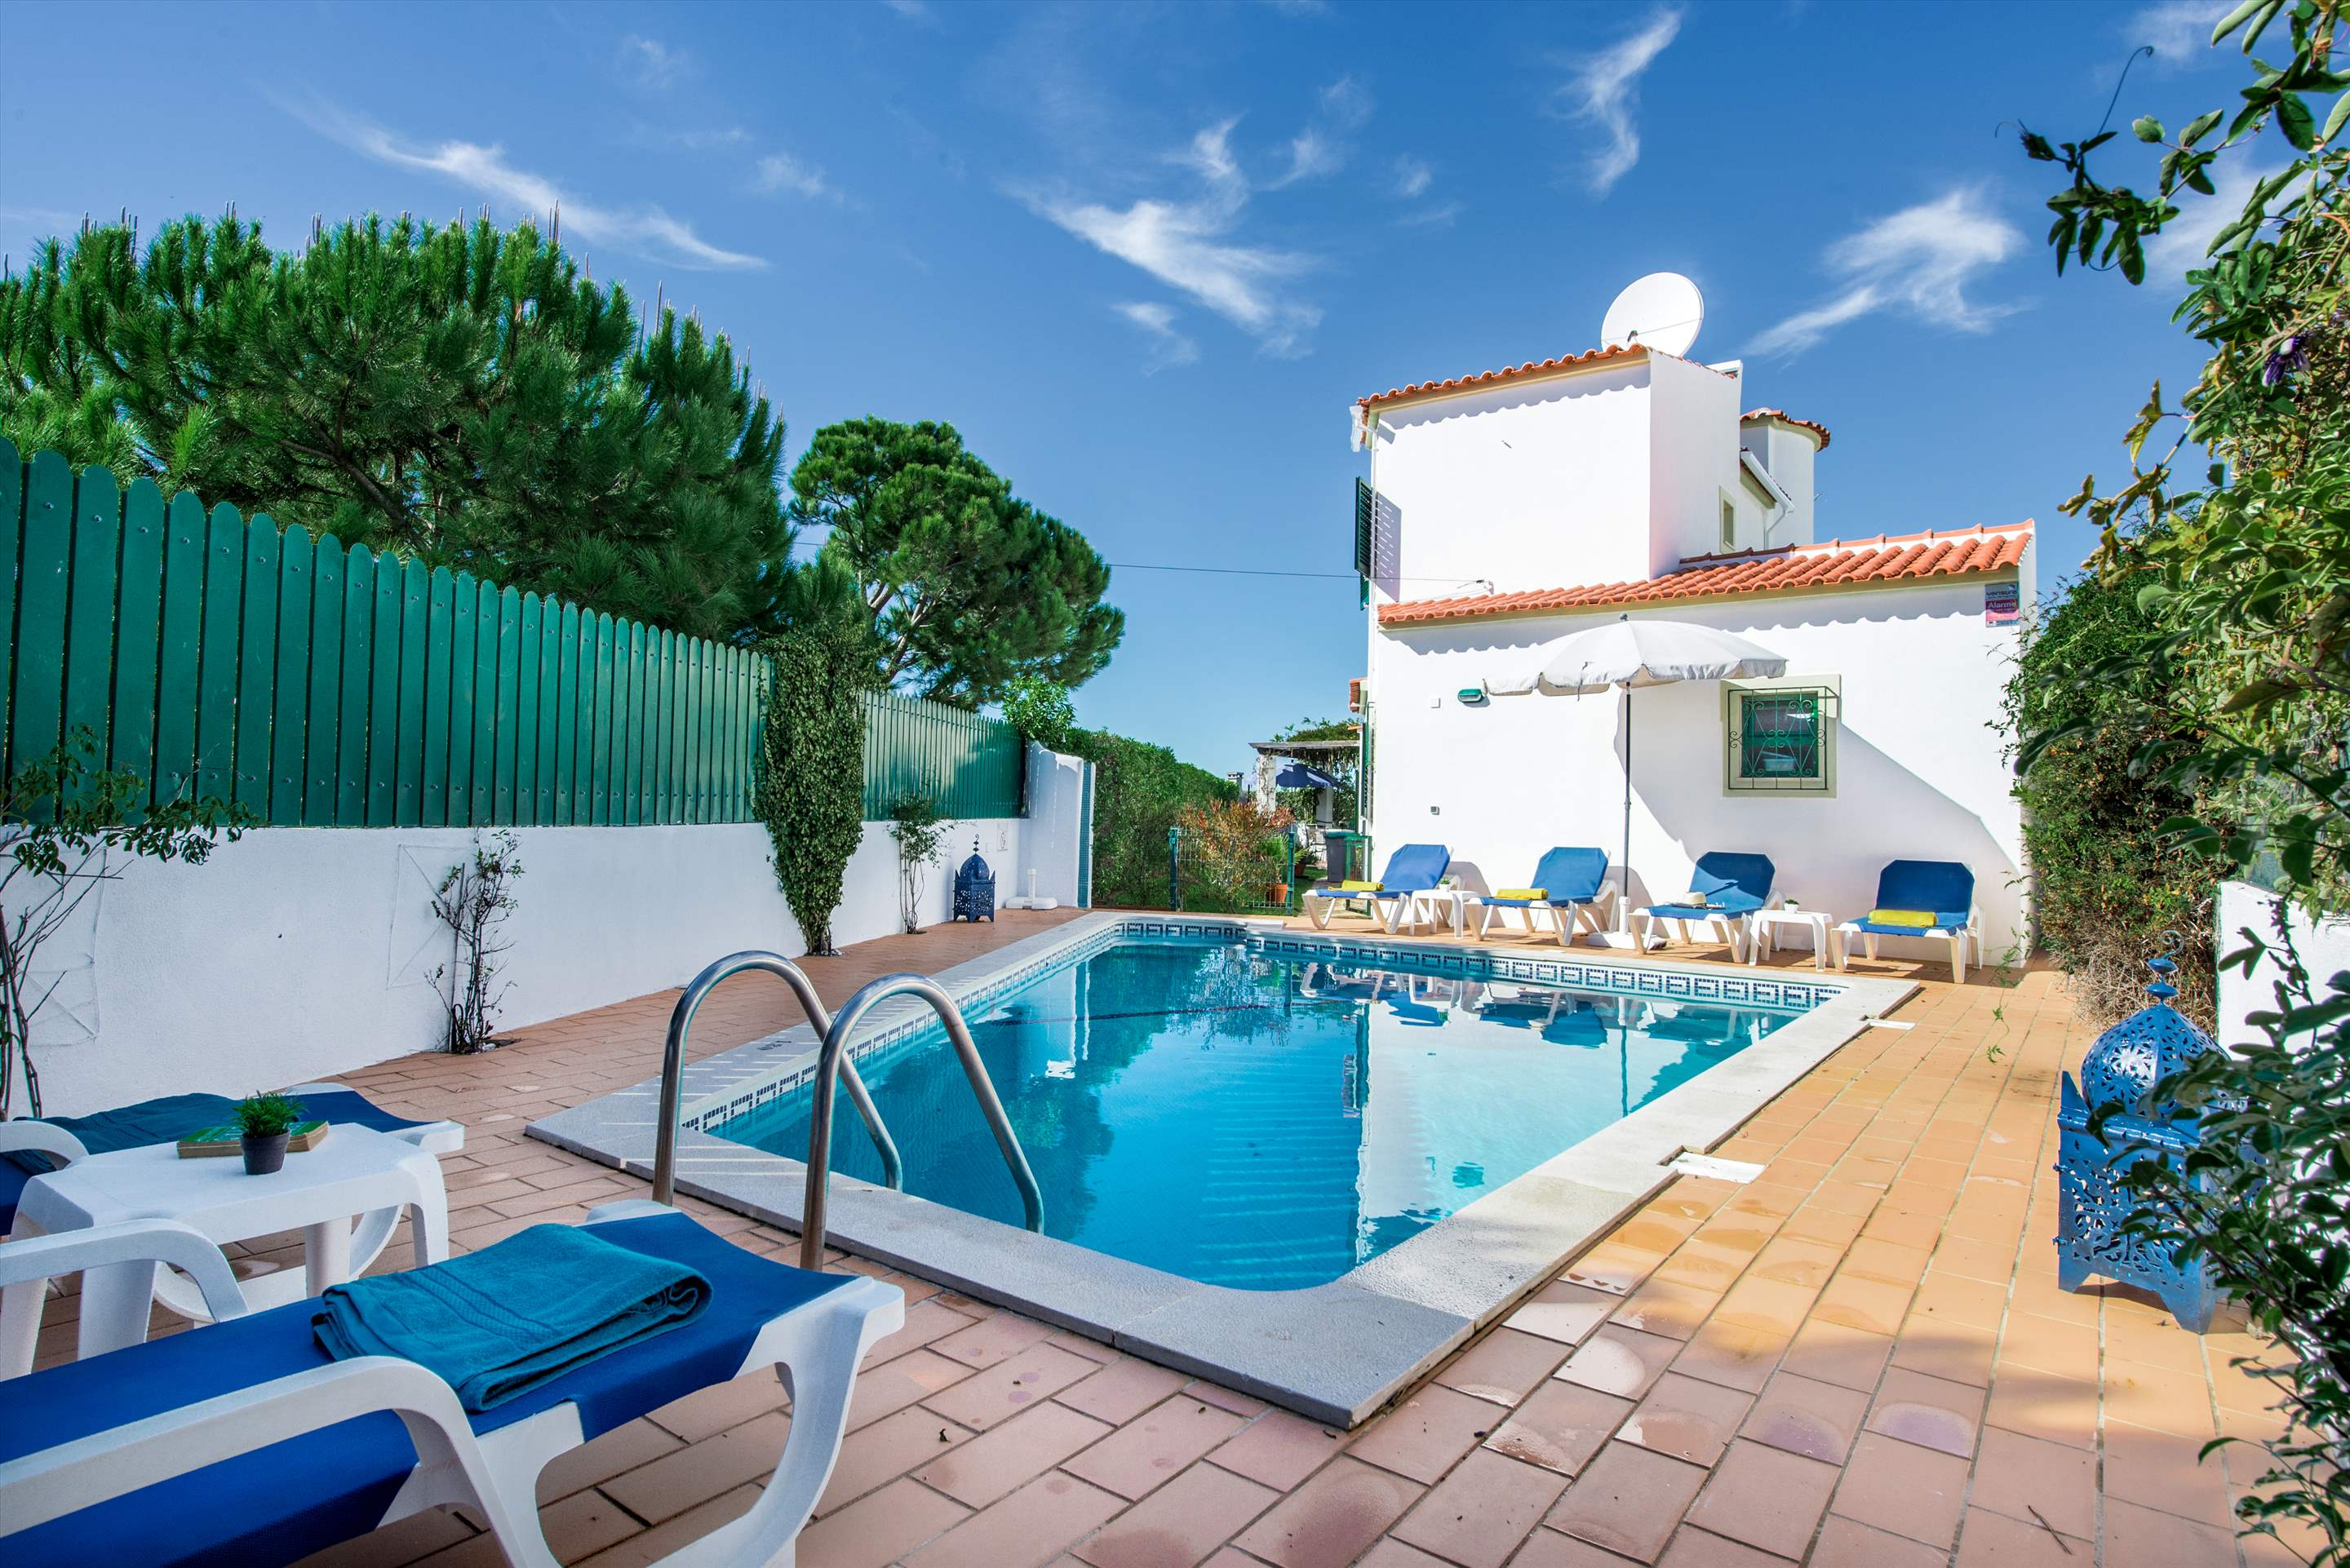 Julieta do Mar, Up to 6 Persons, 3 bedroom villa in Gale, Vale da Parra and Guia, Algarve